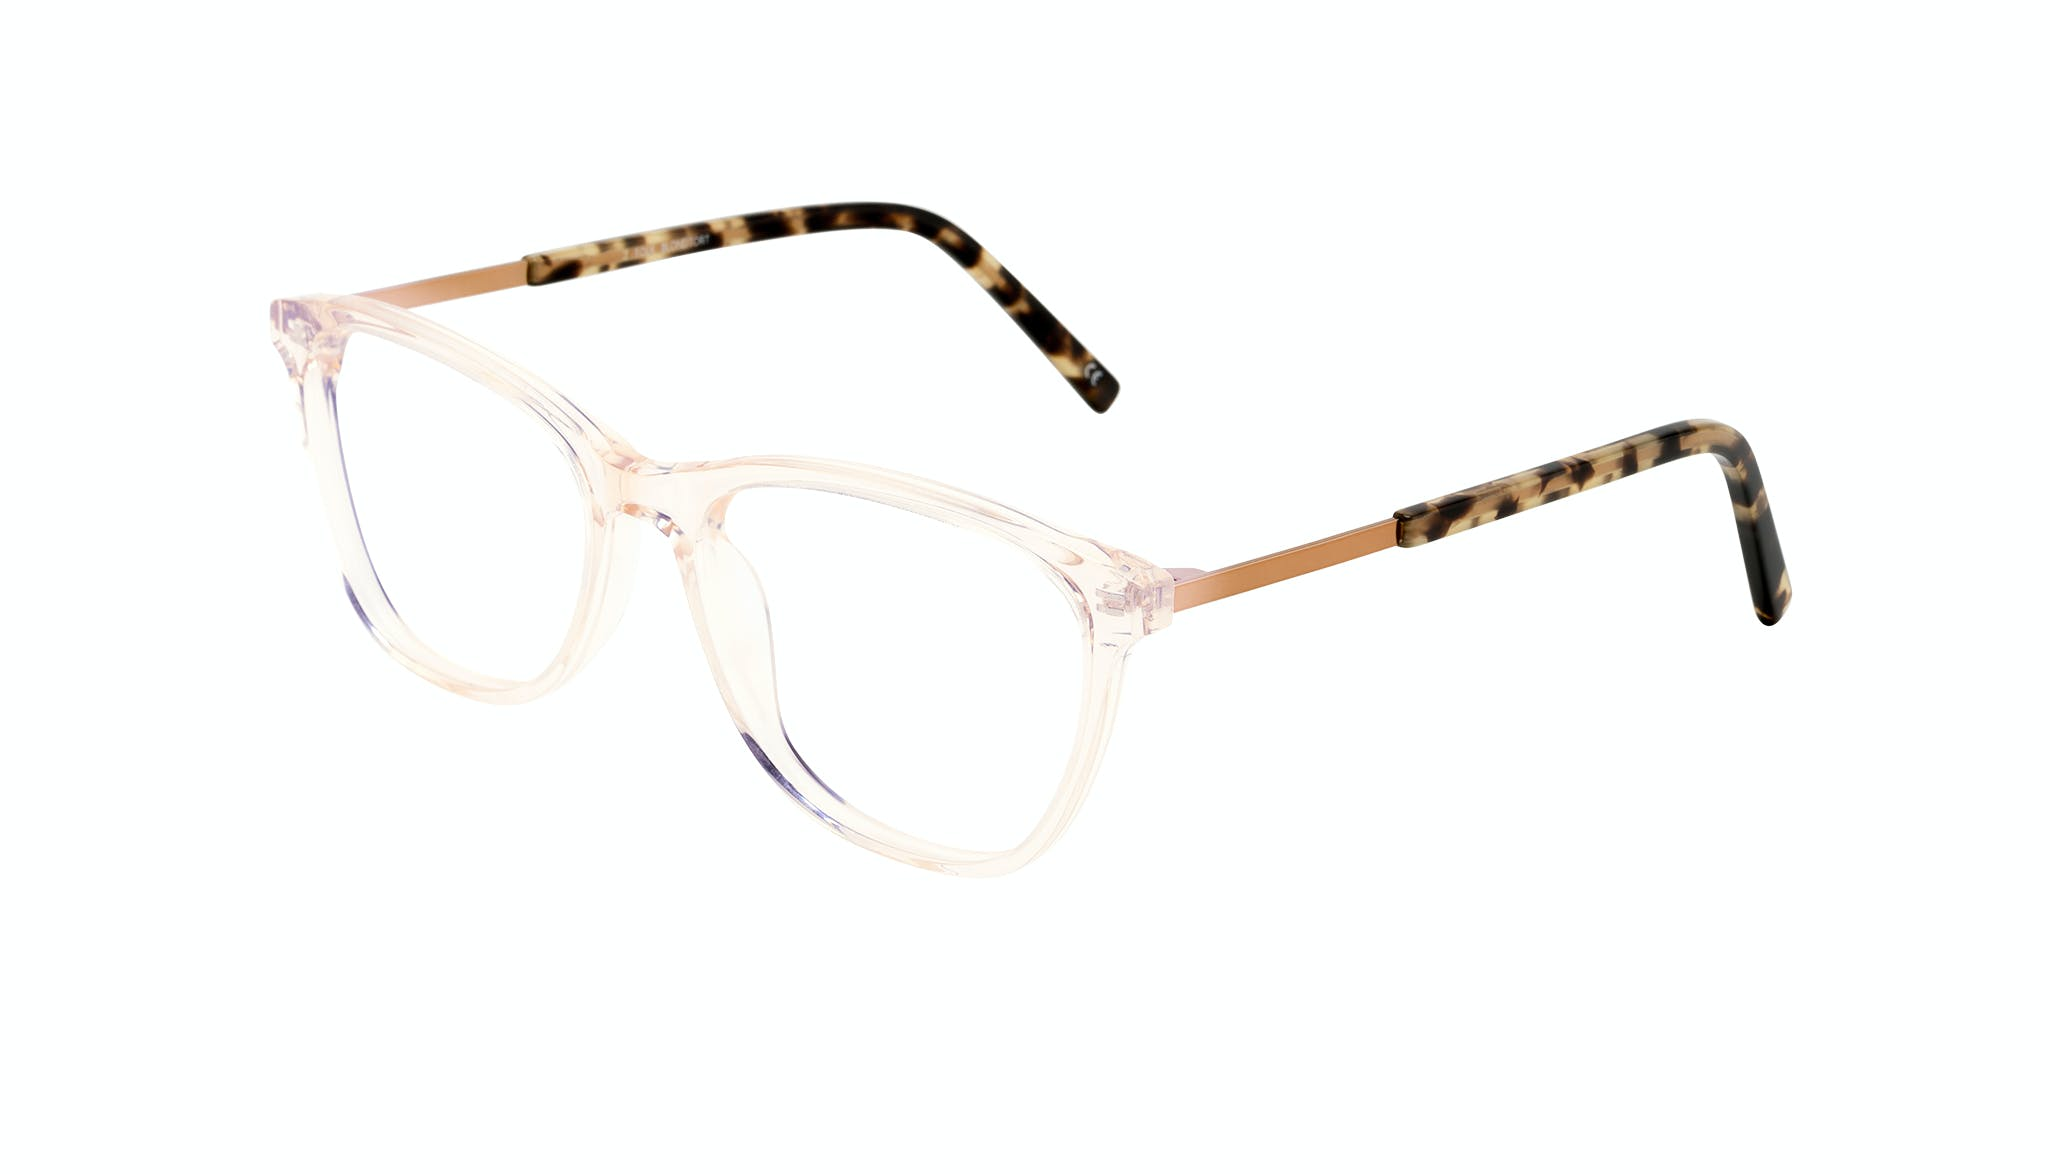 Affordable Fashion Glasses Cat Eye Rectangle Eyeglasses Women Folk Blond Tortoise Tilt